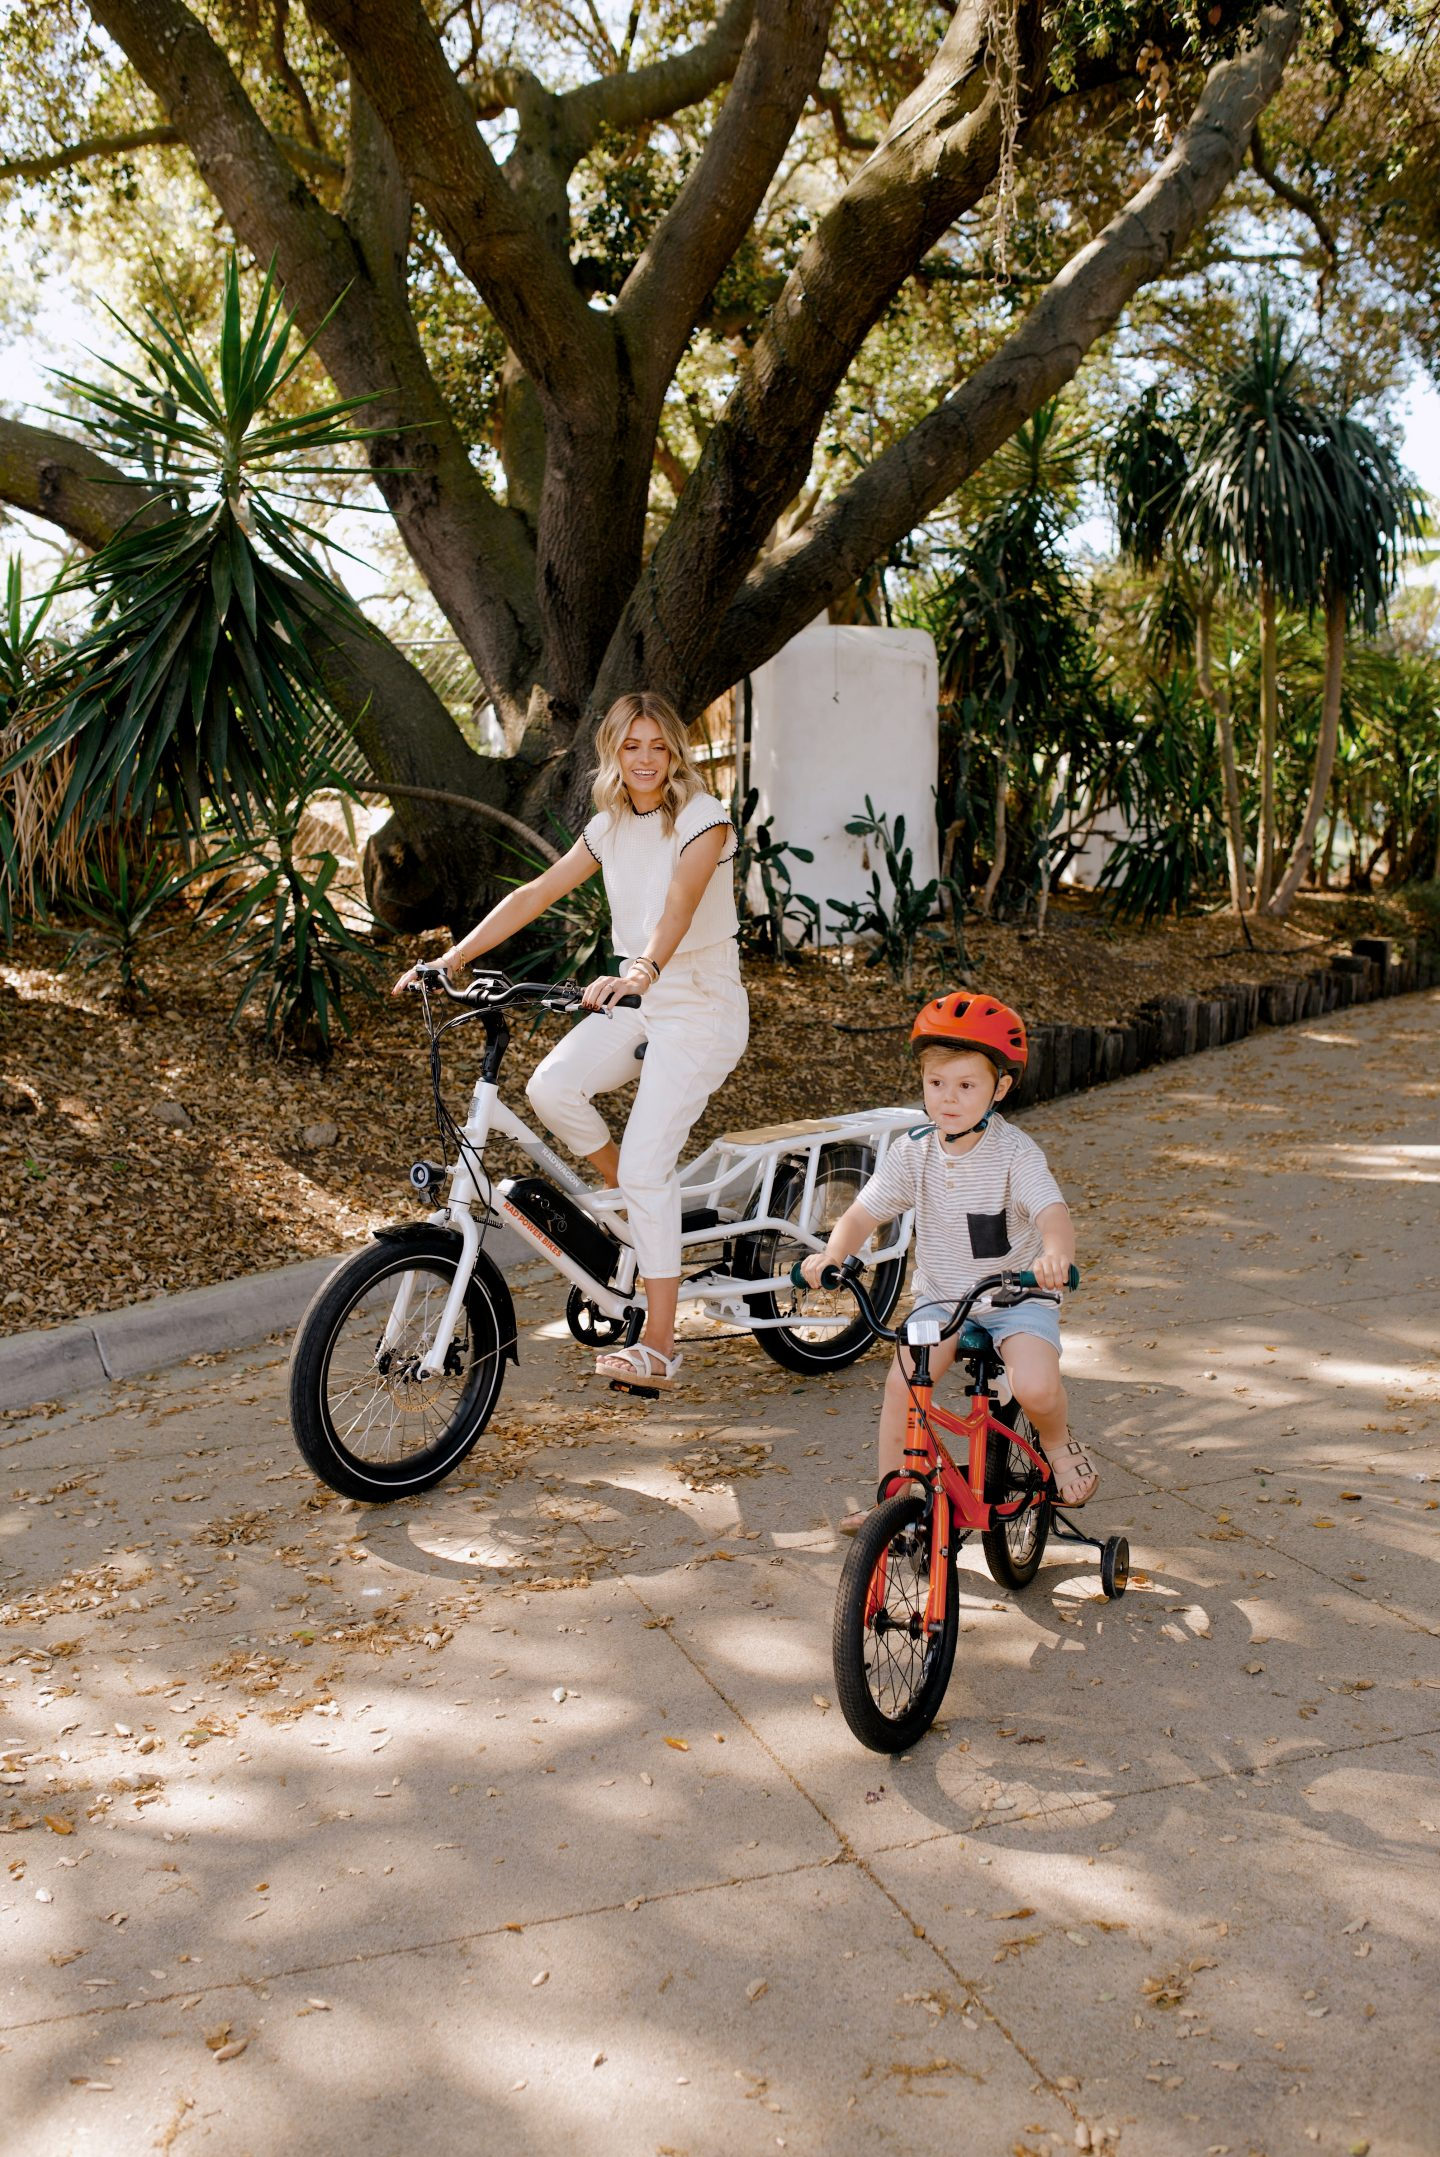 mom and kid riding a bike for things to do with kids